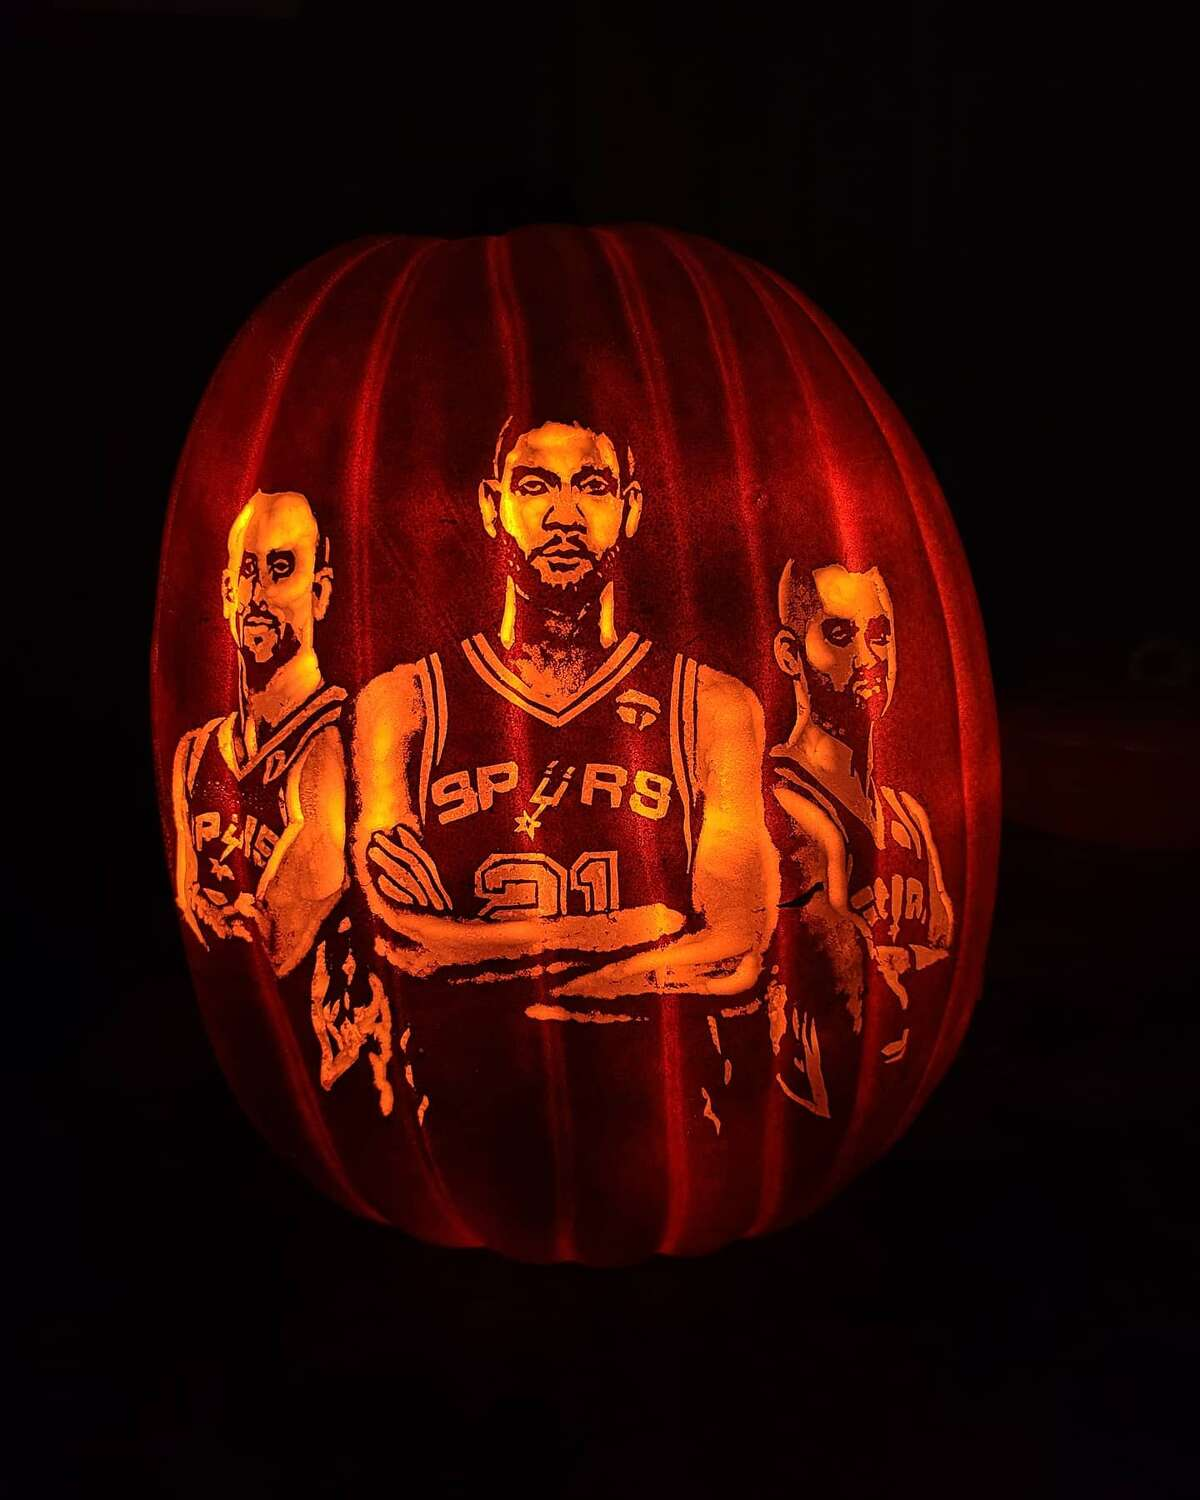 For the past five years, Arthur Alaquinez has created jazzed up jack-o'-lanterns, usually of the Spurs or Selena. This year he reunited the Spurs Big Three on a pumpkin in four hours, a personal best for him.